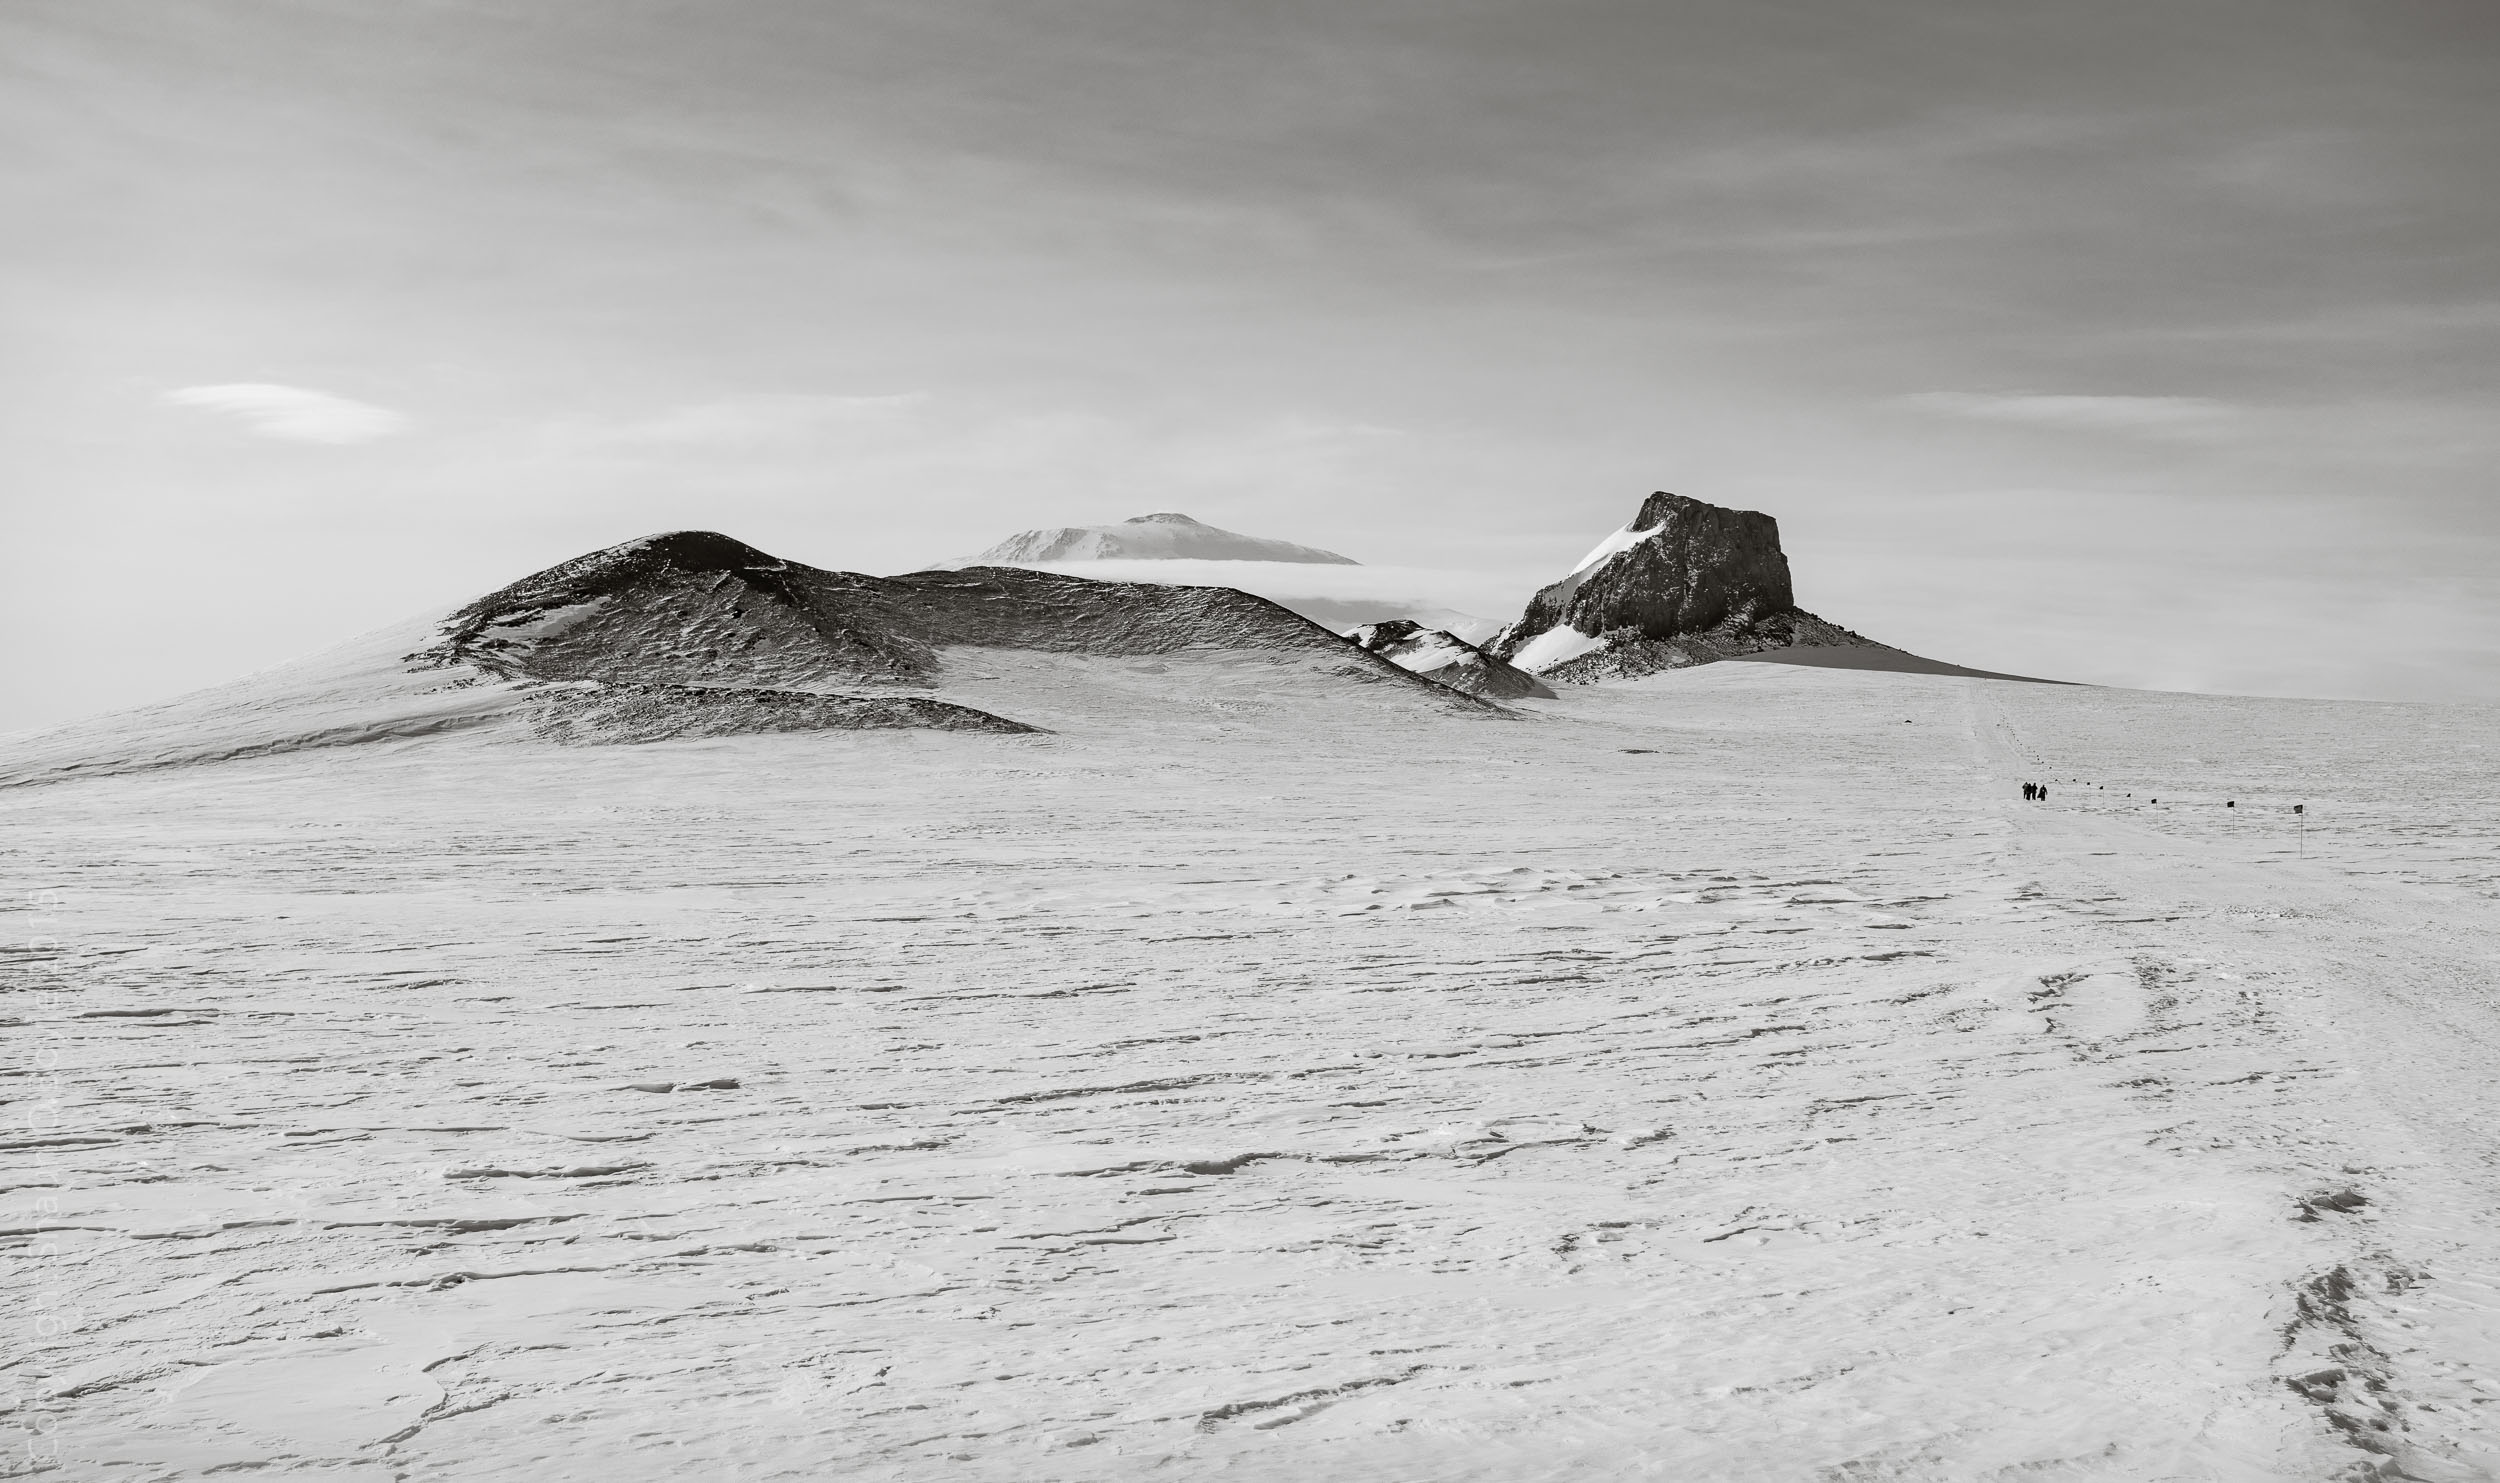 Approaching Castle Rock with Mount Erebus beyond.